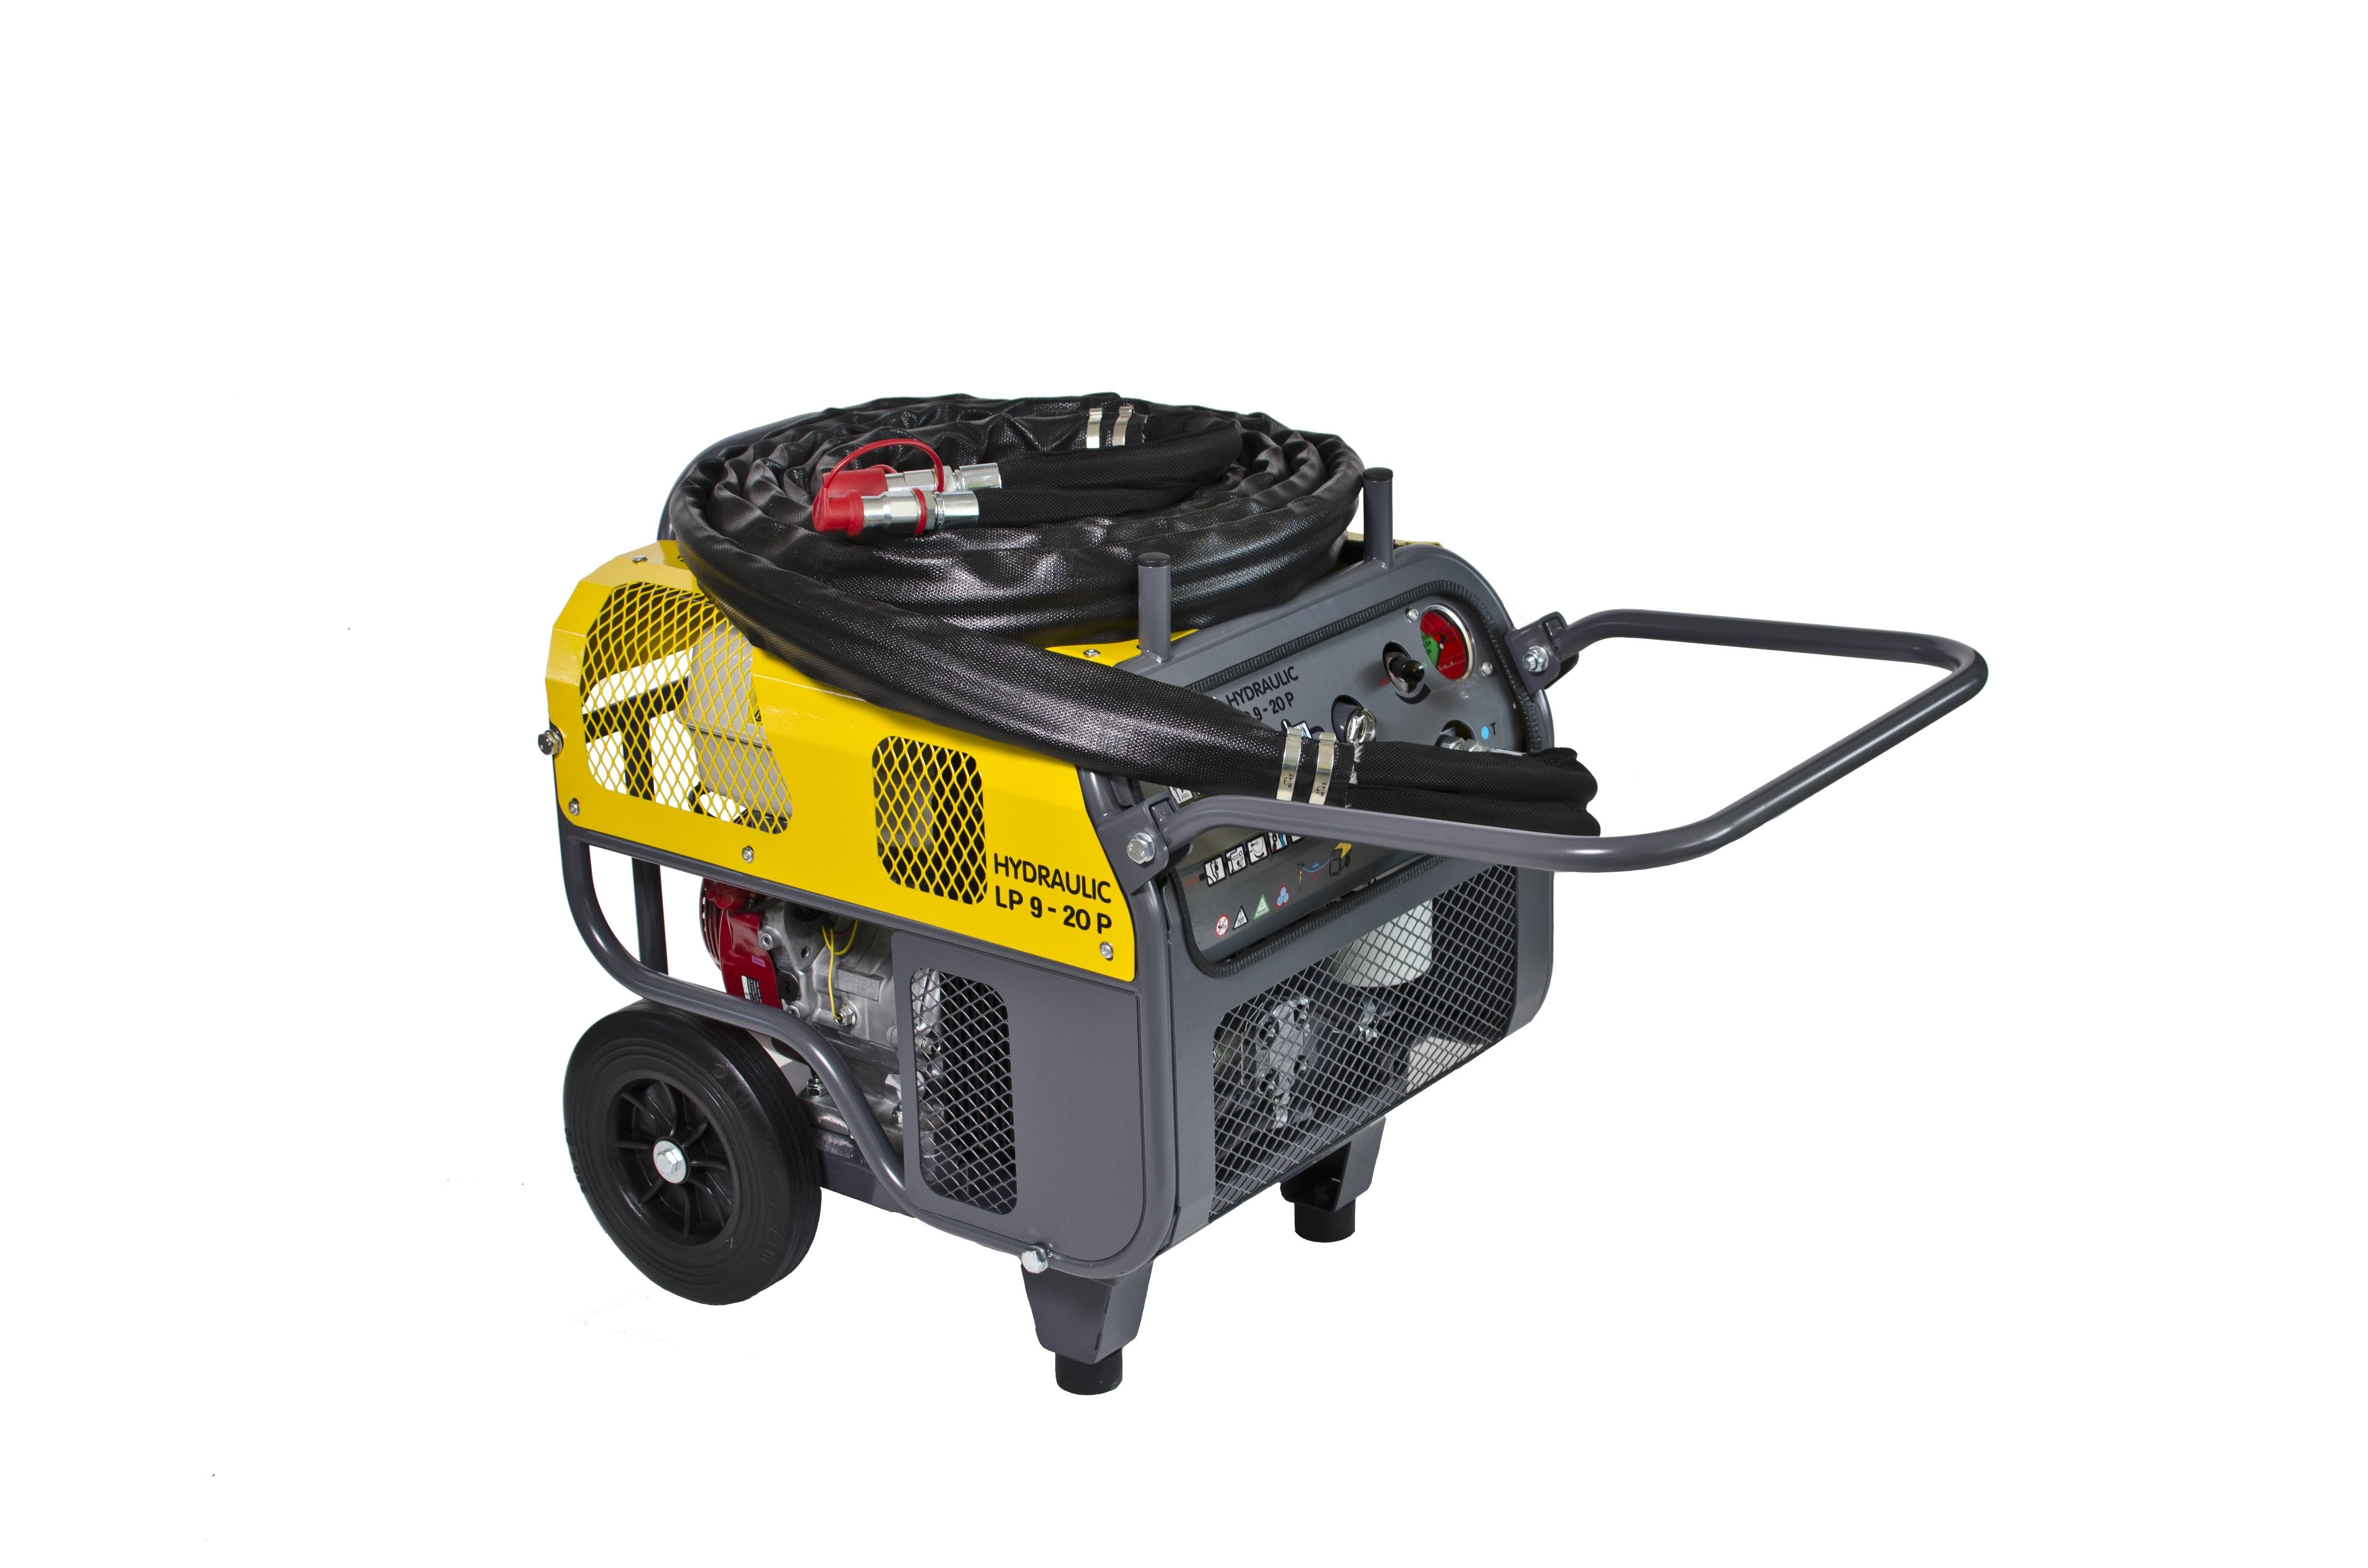 Atlas Copco updates LP9-20 Hydraulic Power Pack